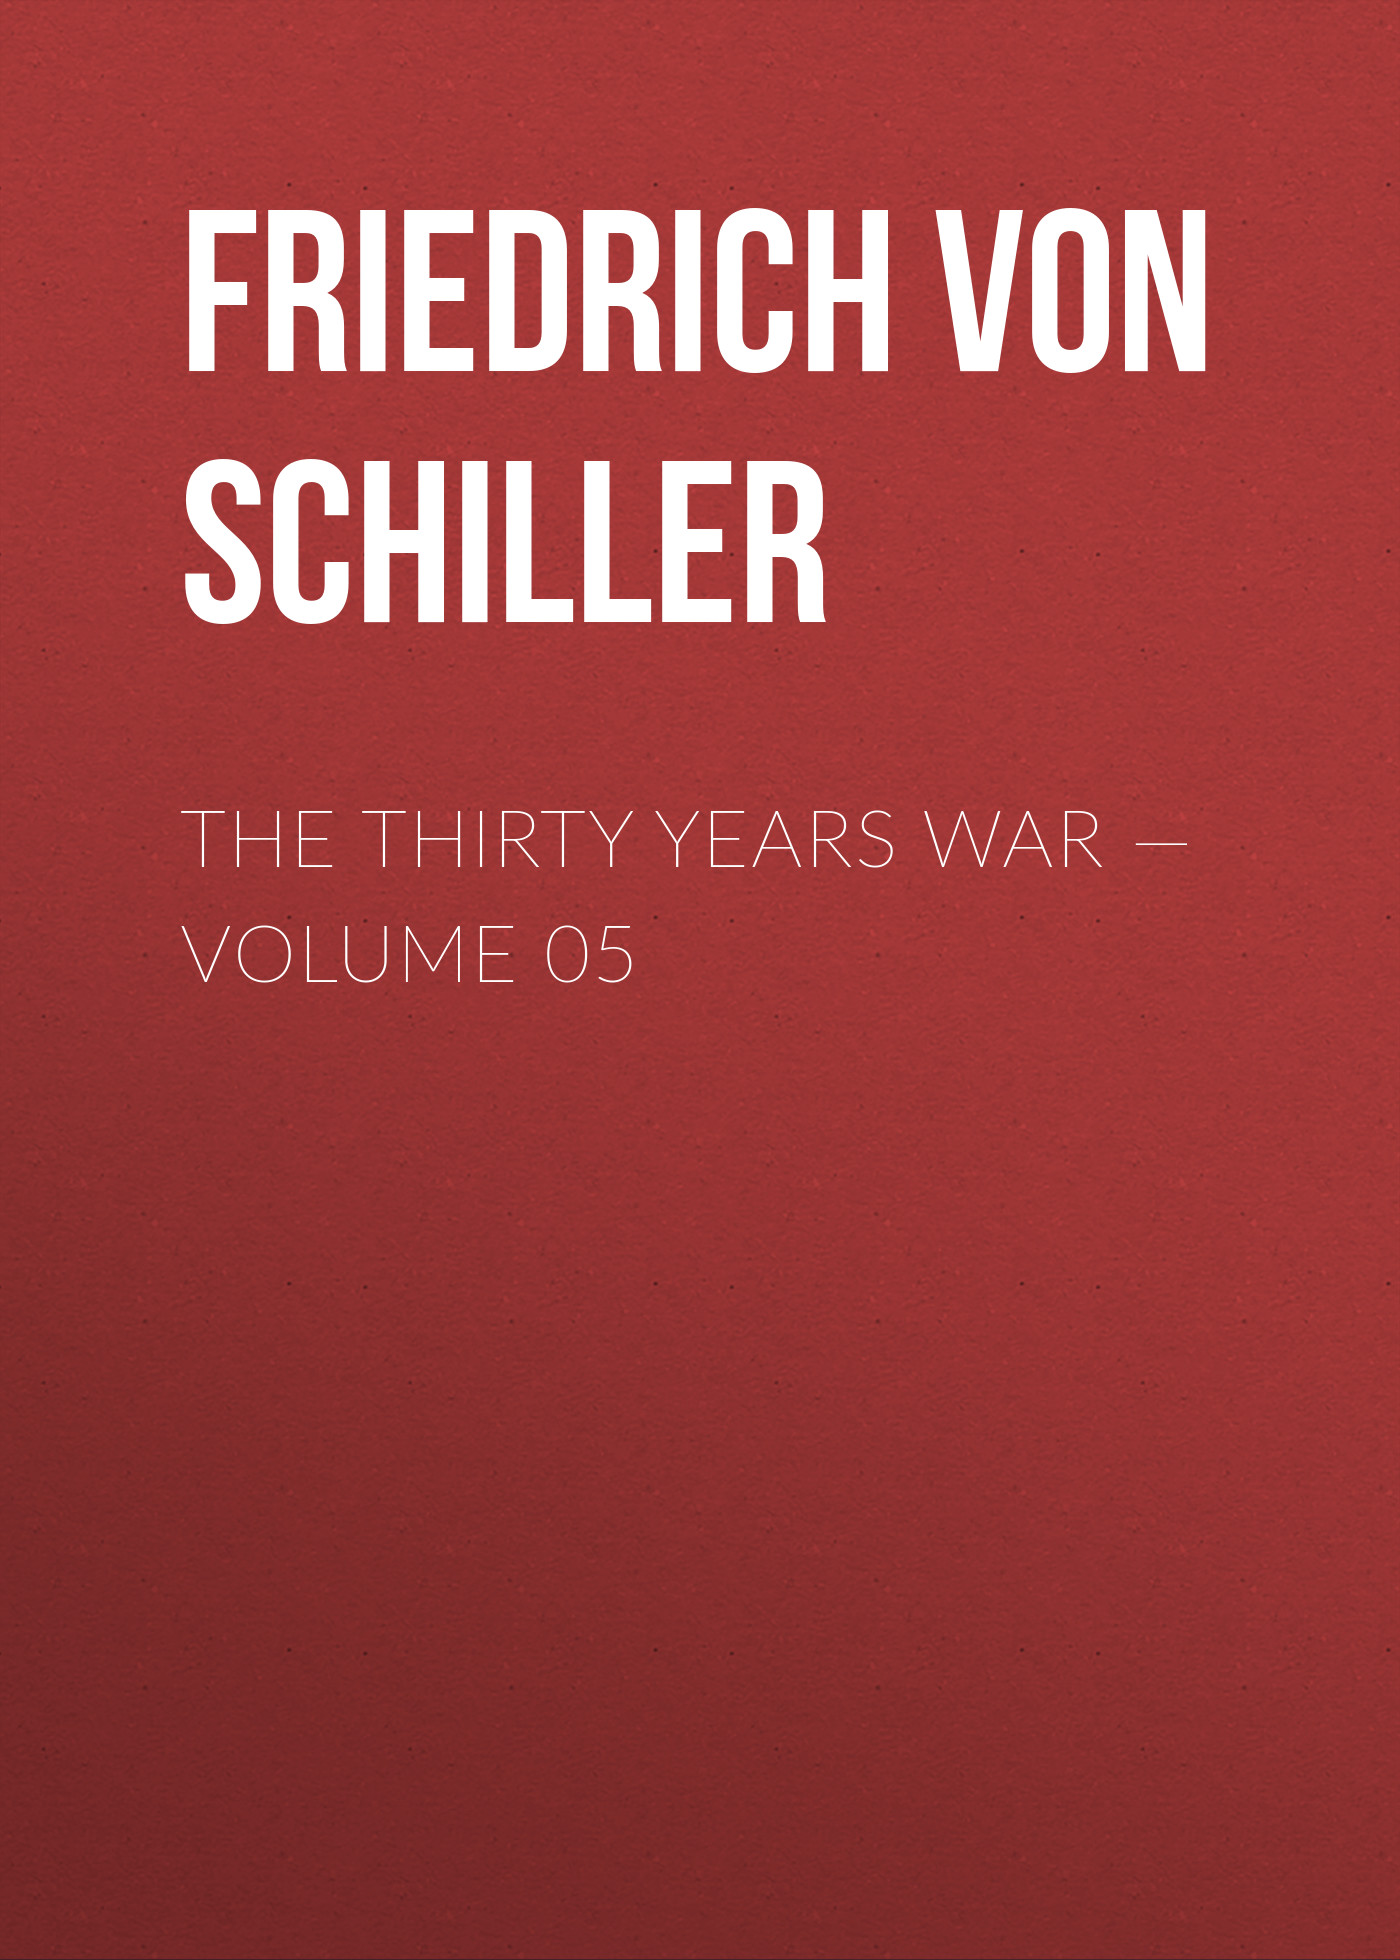 лучшая цена Friedrich von Schiller The Thirty Years War — Volume 05